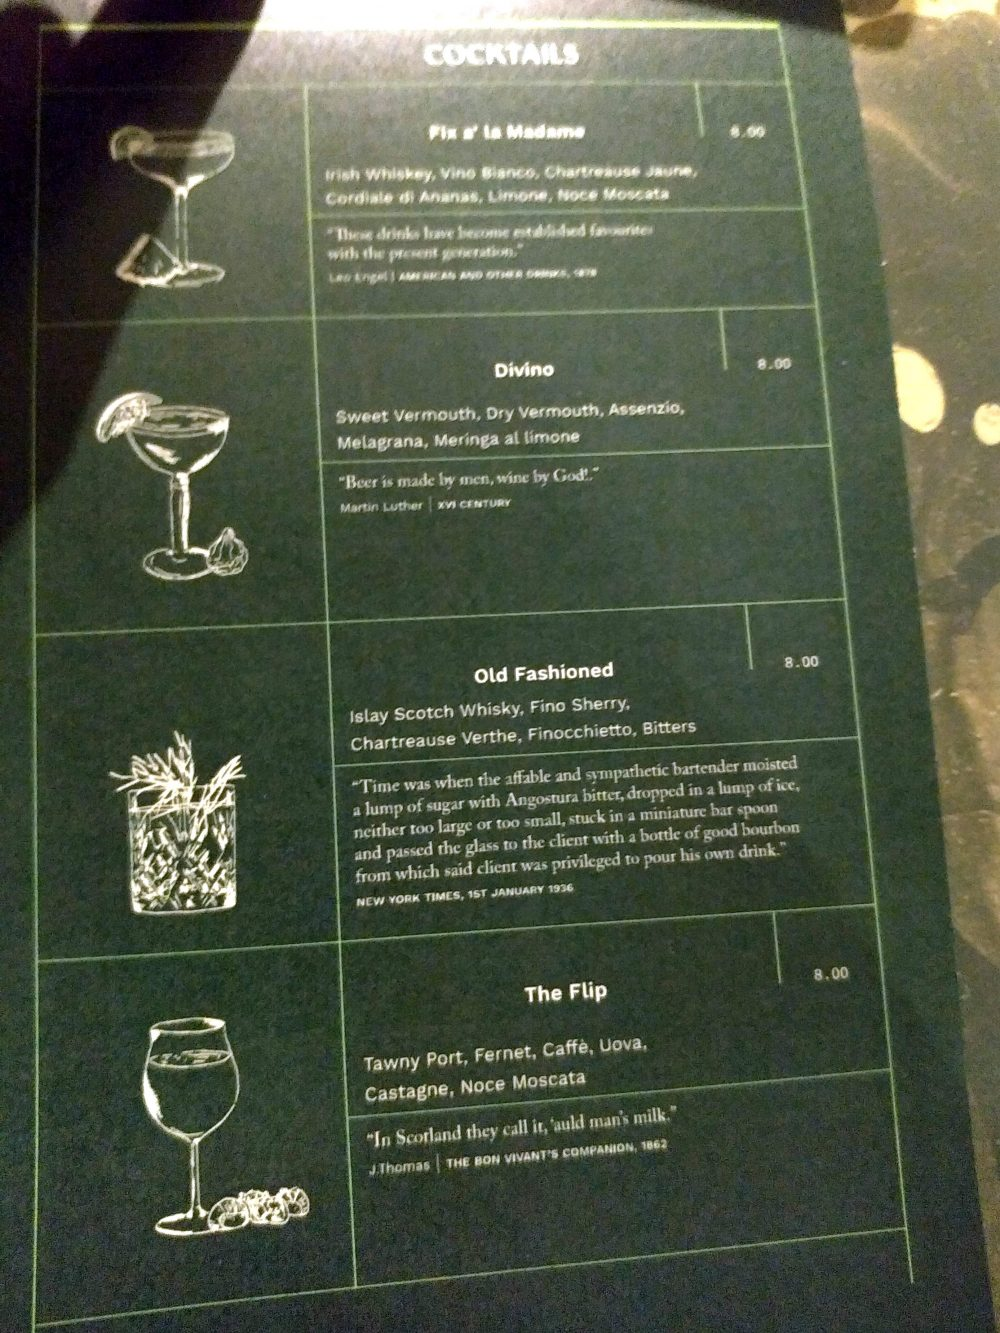 Apotheca - Dispensa e Dopolavoro a Caserta. Menu cocktail